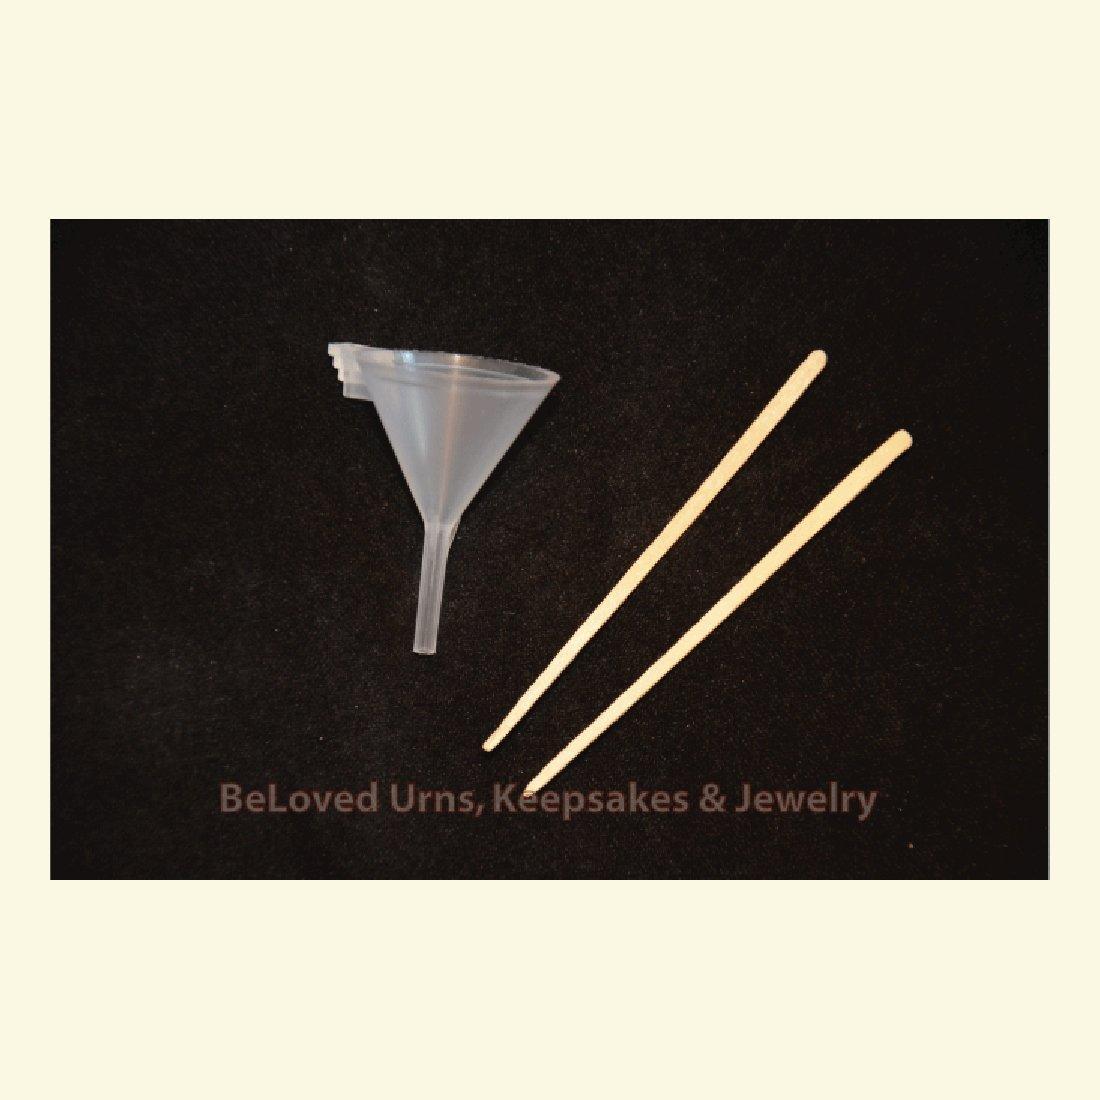 Funnel Kit For Filling Cremation Jewelry Urns and Keepsakes with Ashes Avail Now! na